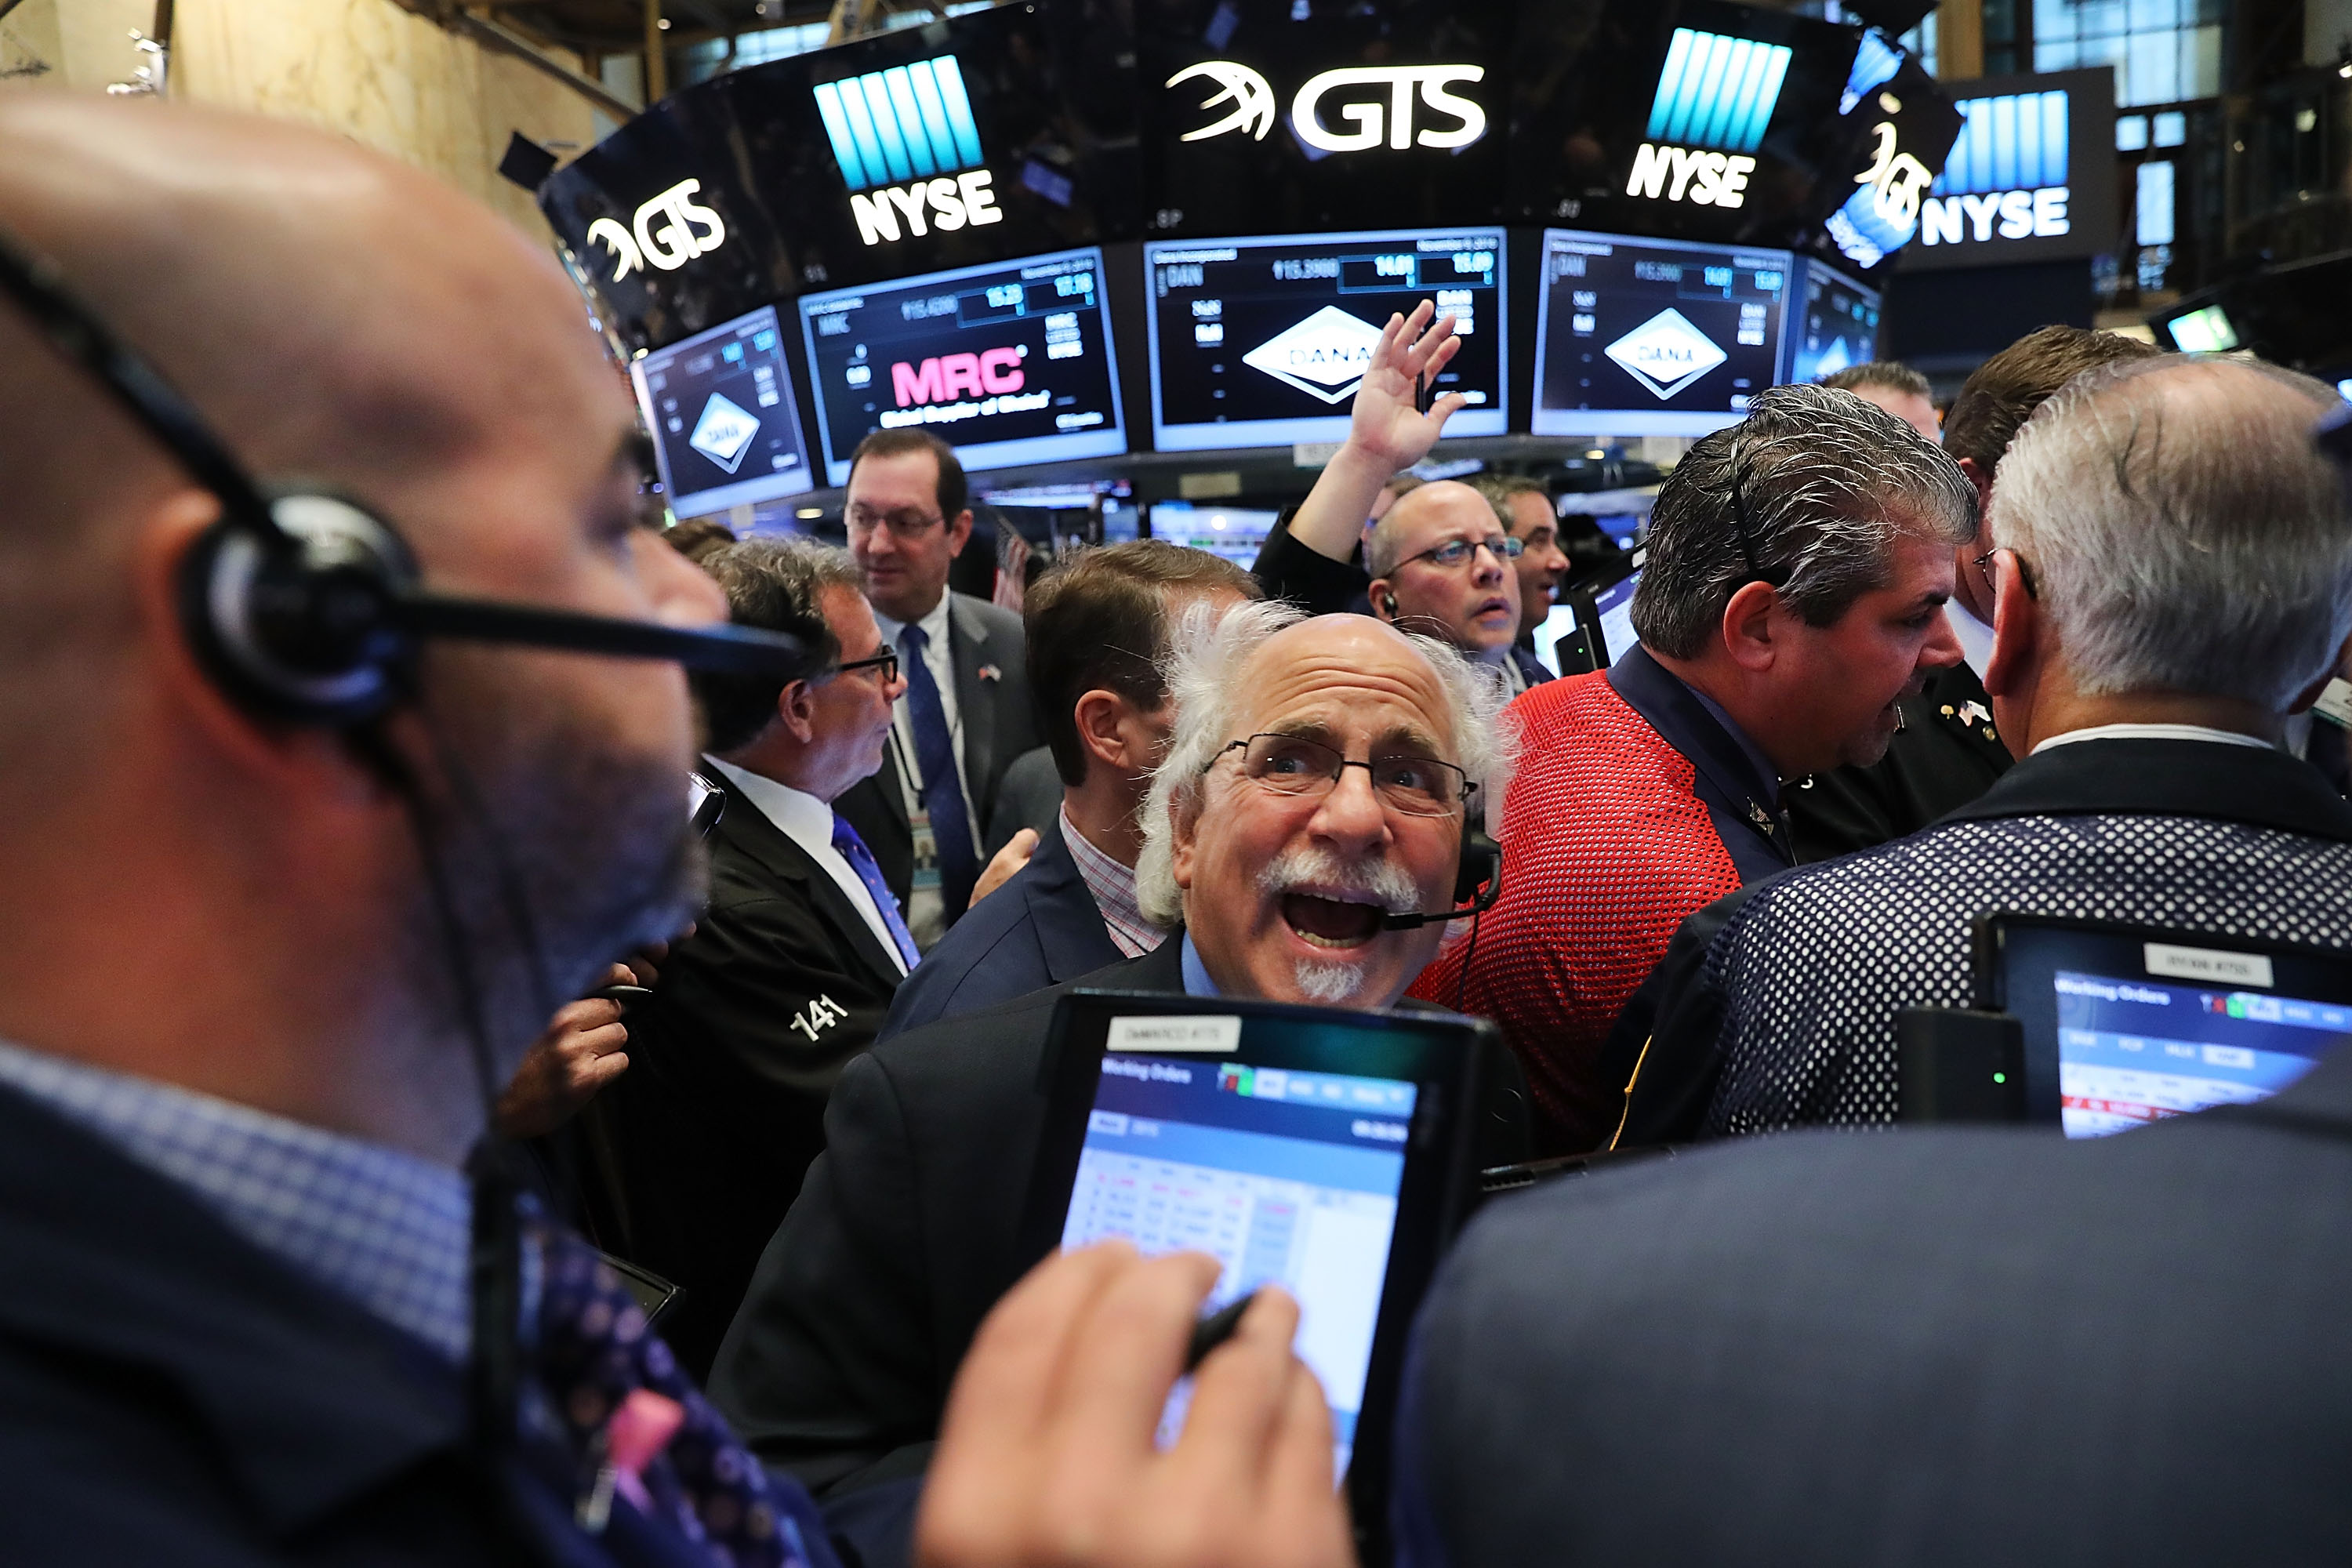 Traders looking surprised on the floor of the NYSE.